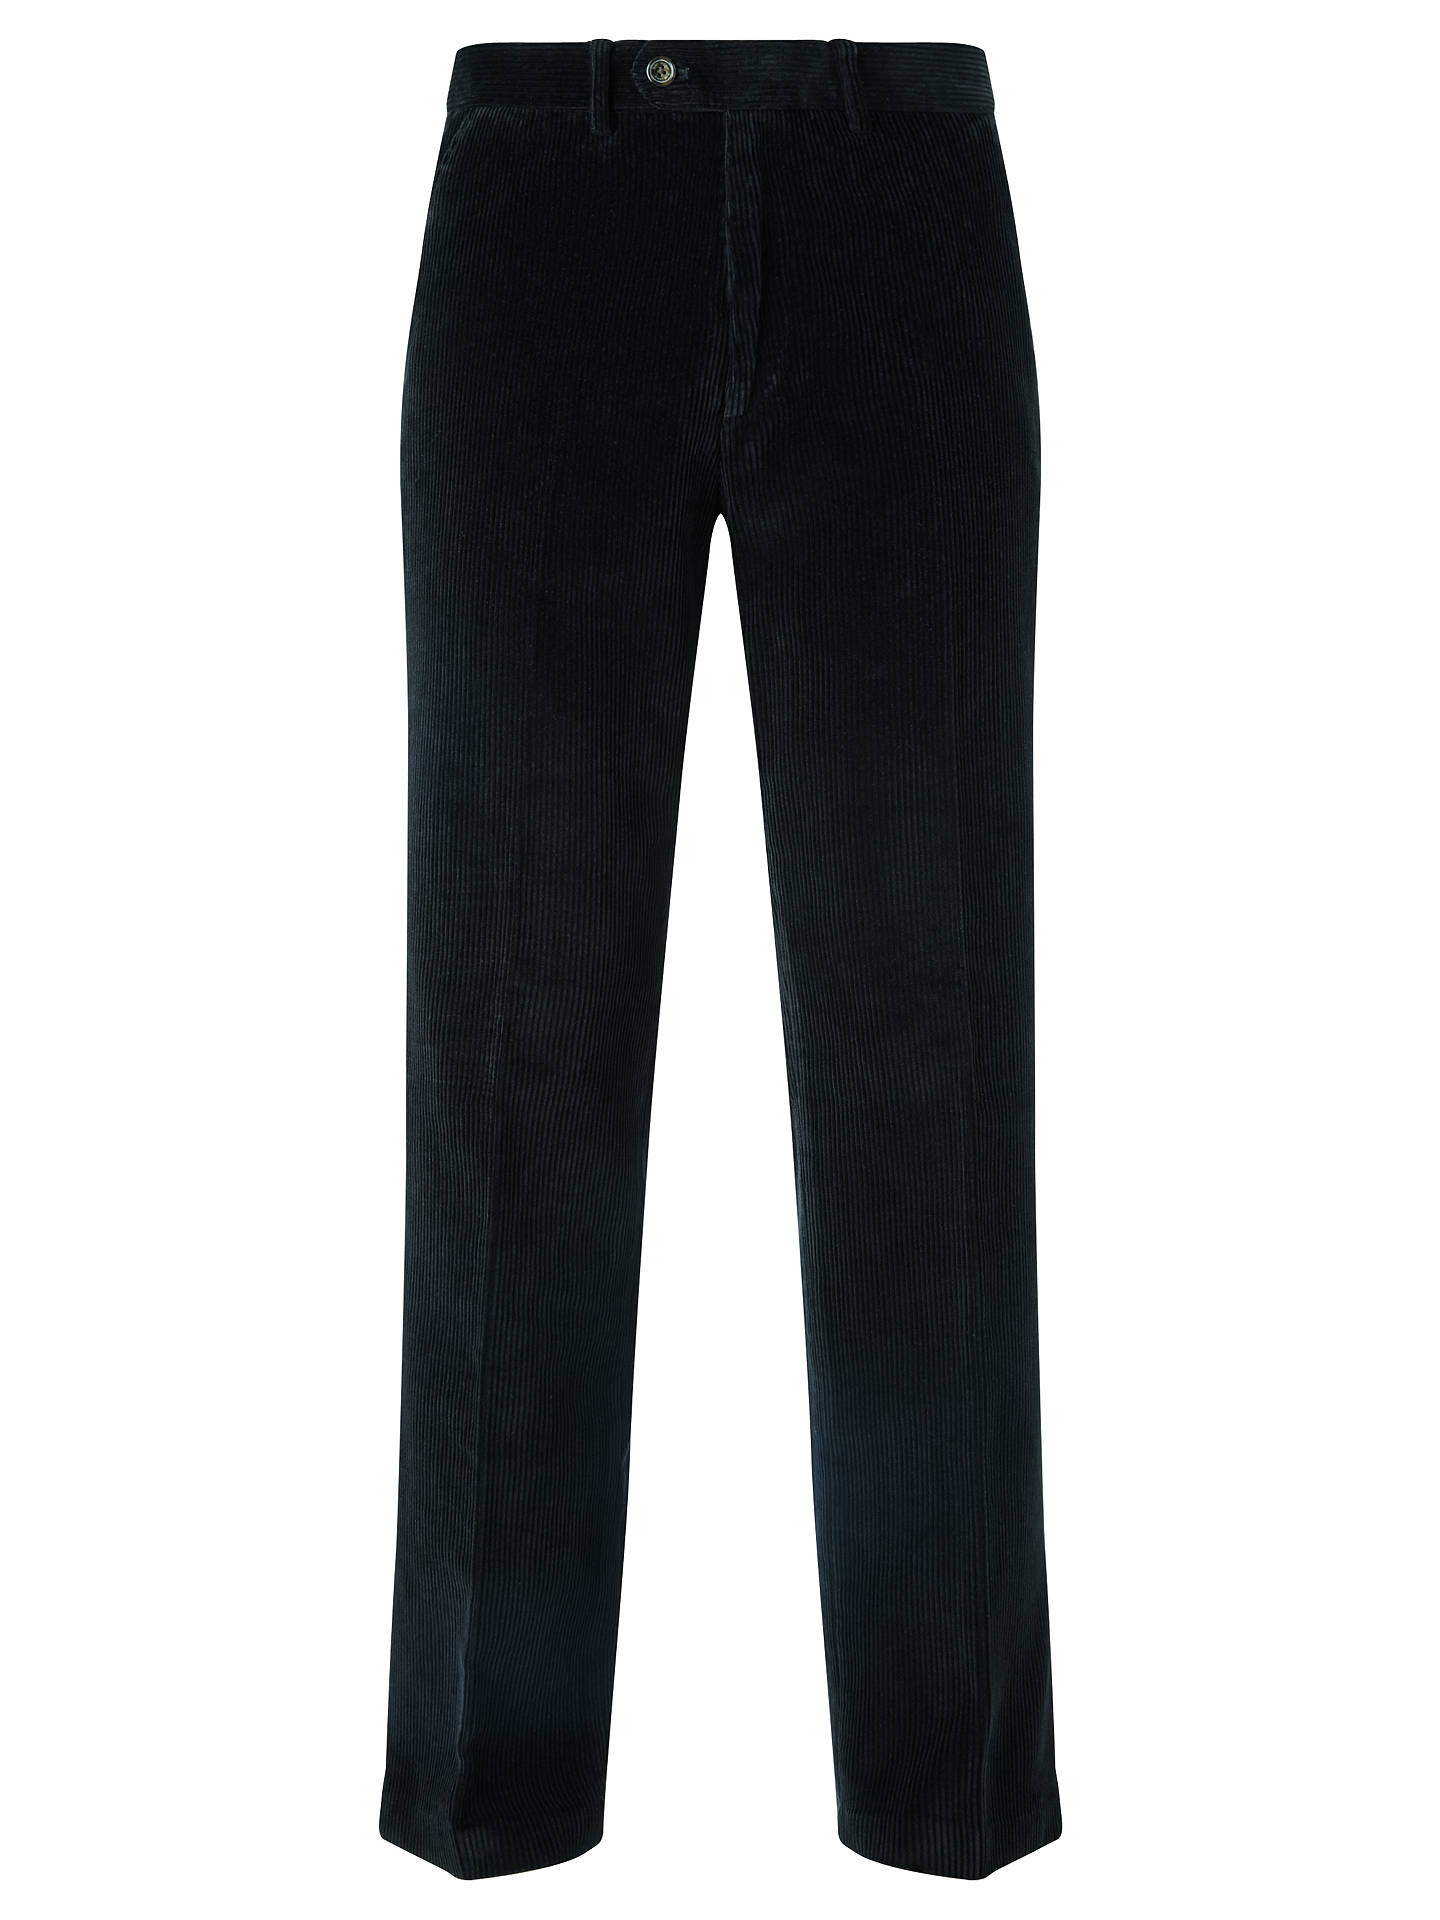 Buy John Lewis Laundered Cotton Corduroy Trousers, Dark Navy, 34L Online at johnlewis.com